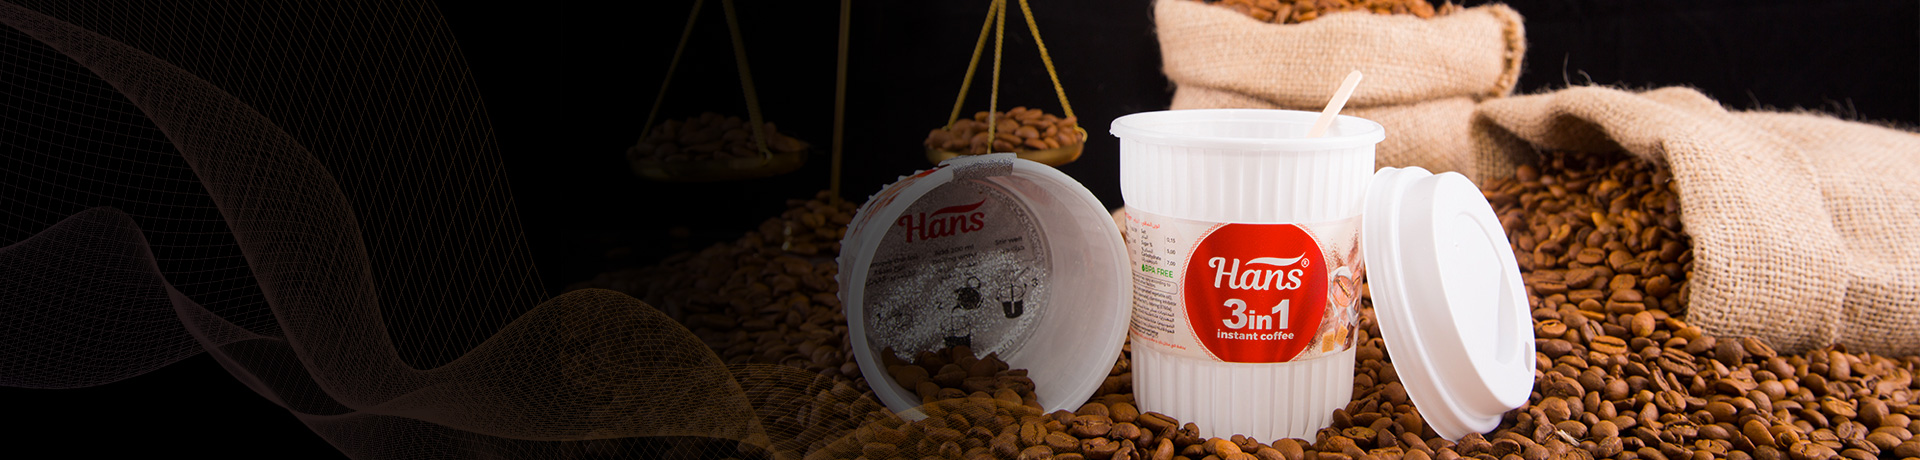 Hans Gold 50 gr Instant Coffee In Glass